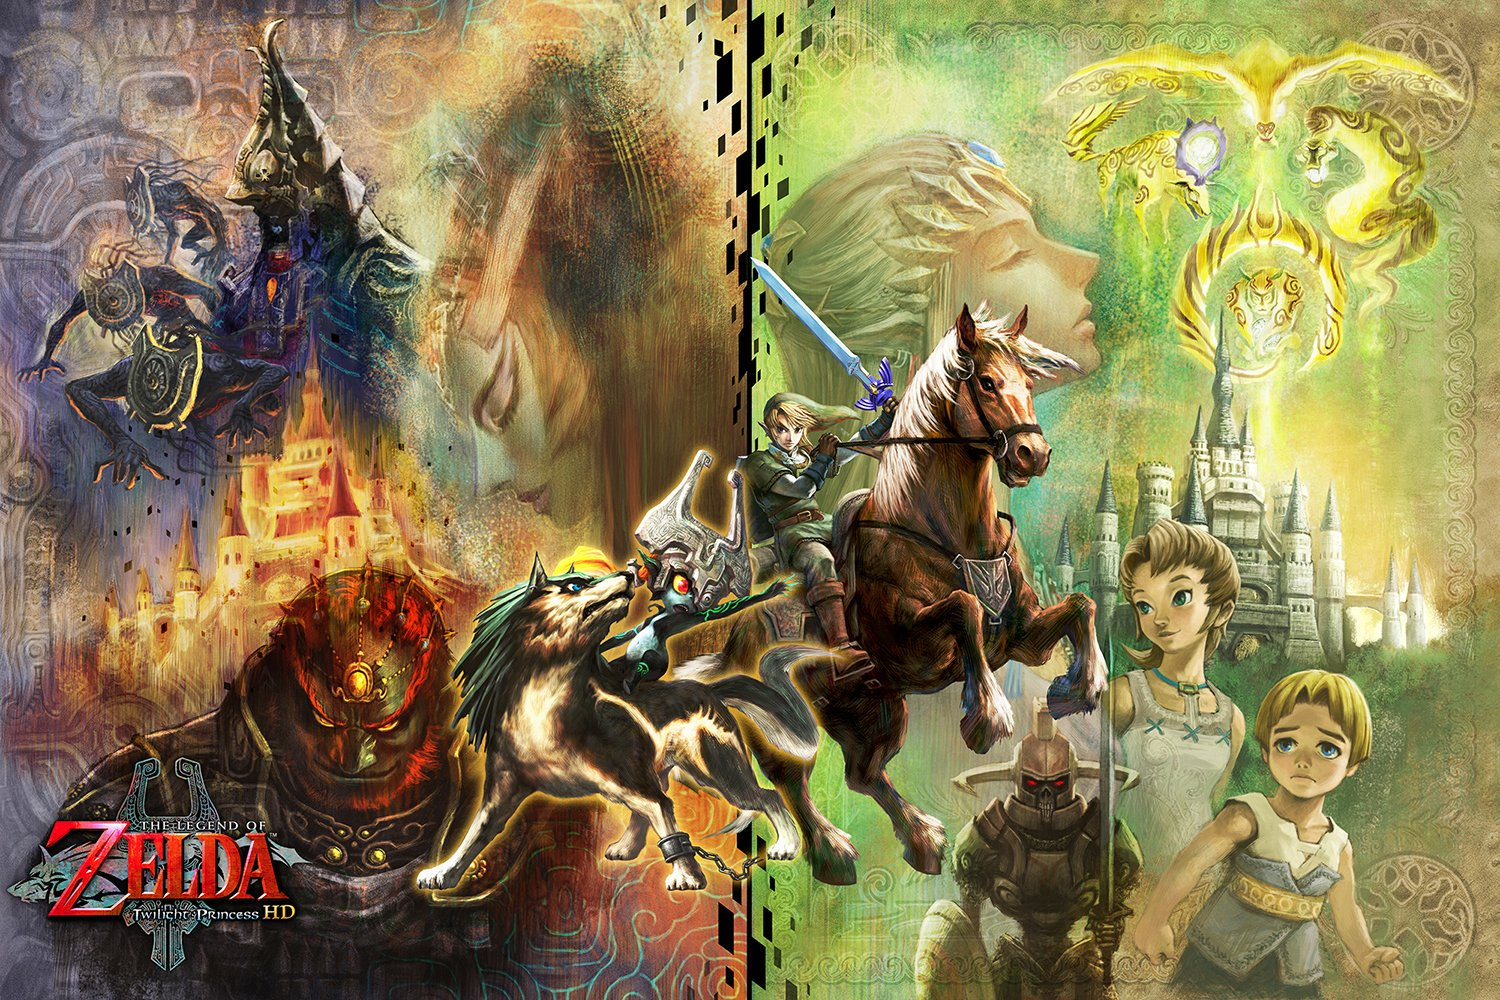 Bildergebnis für the legend of zelda twillight princess